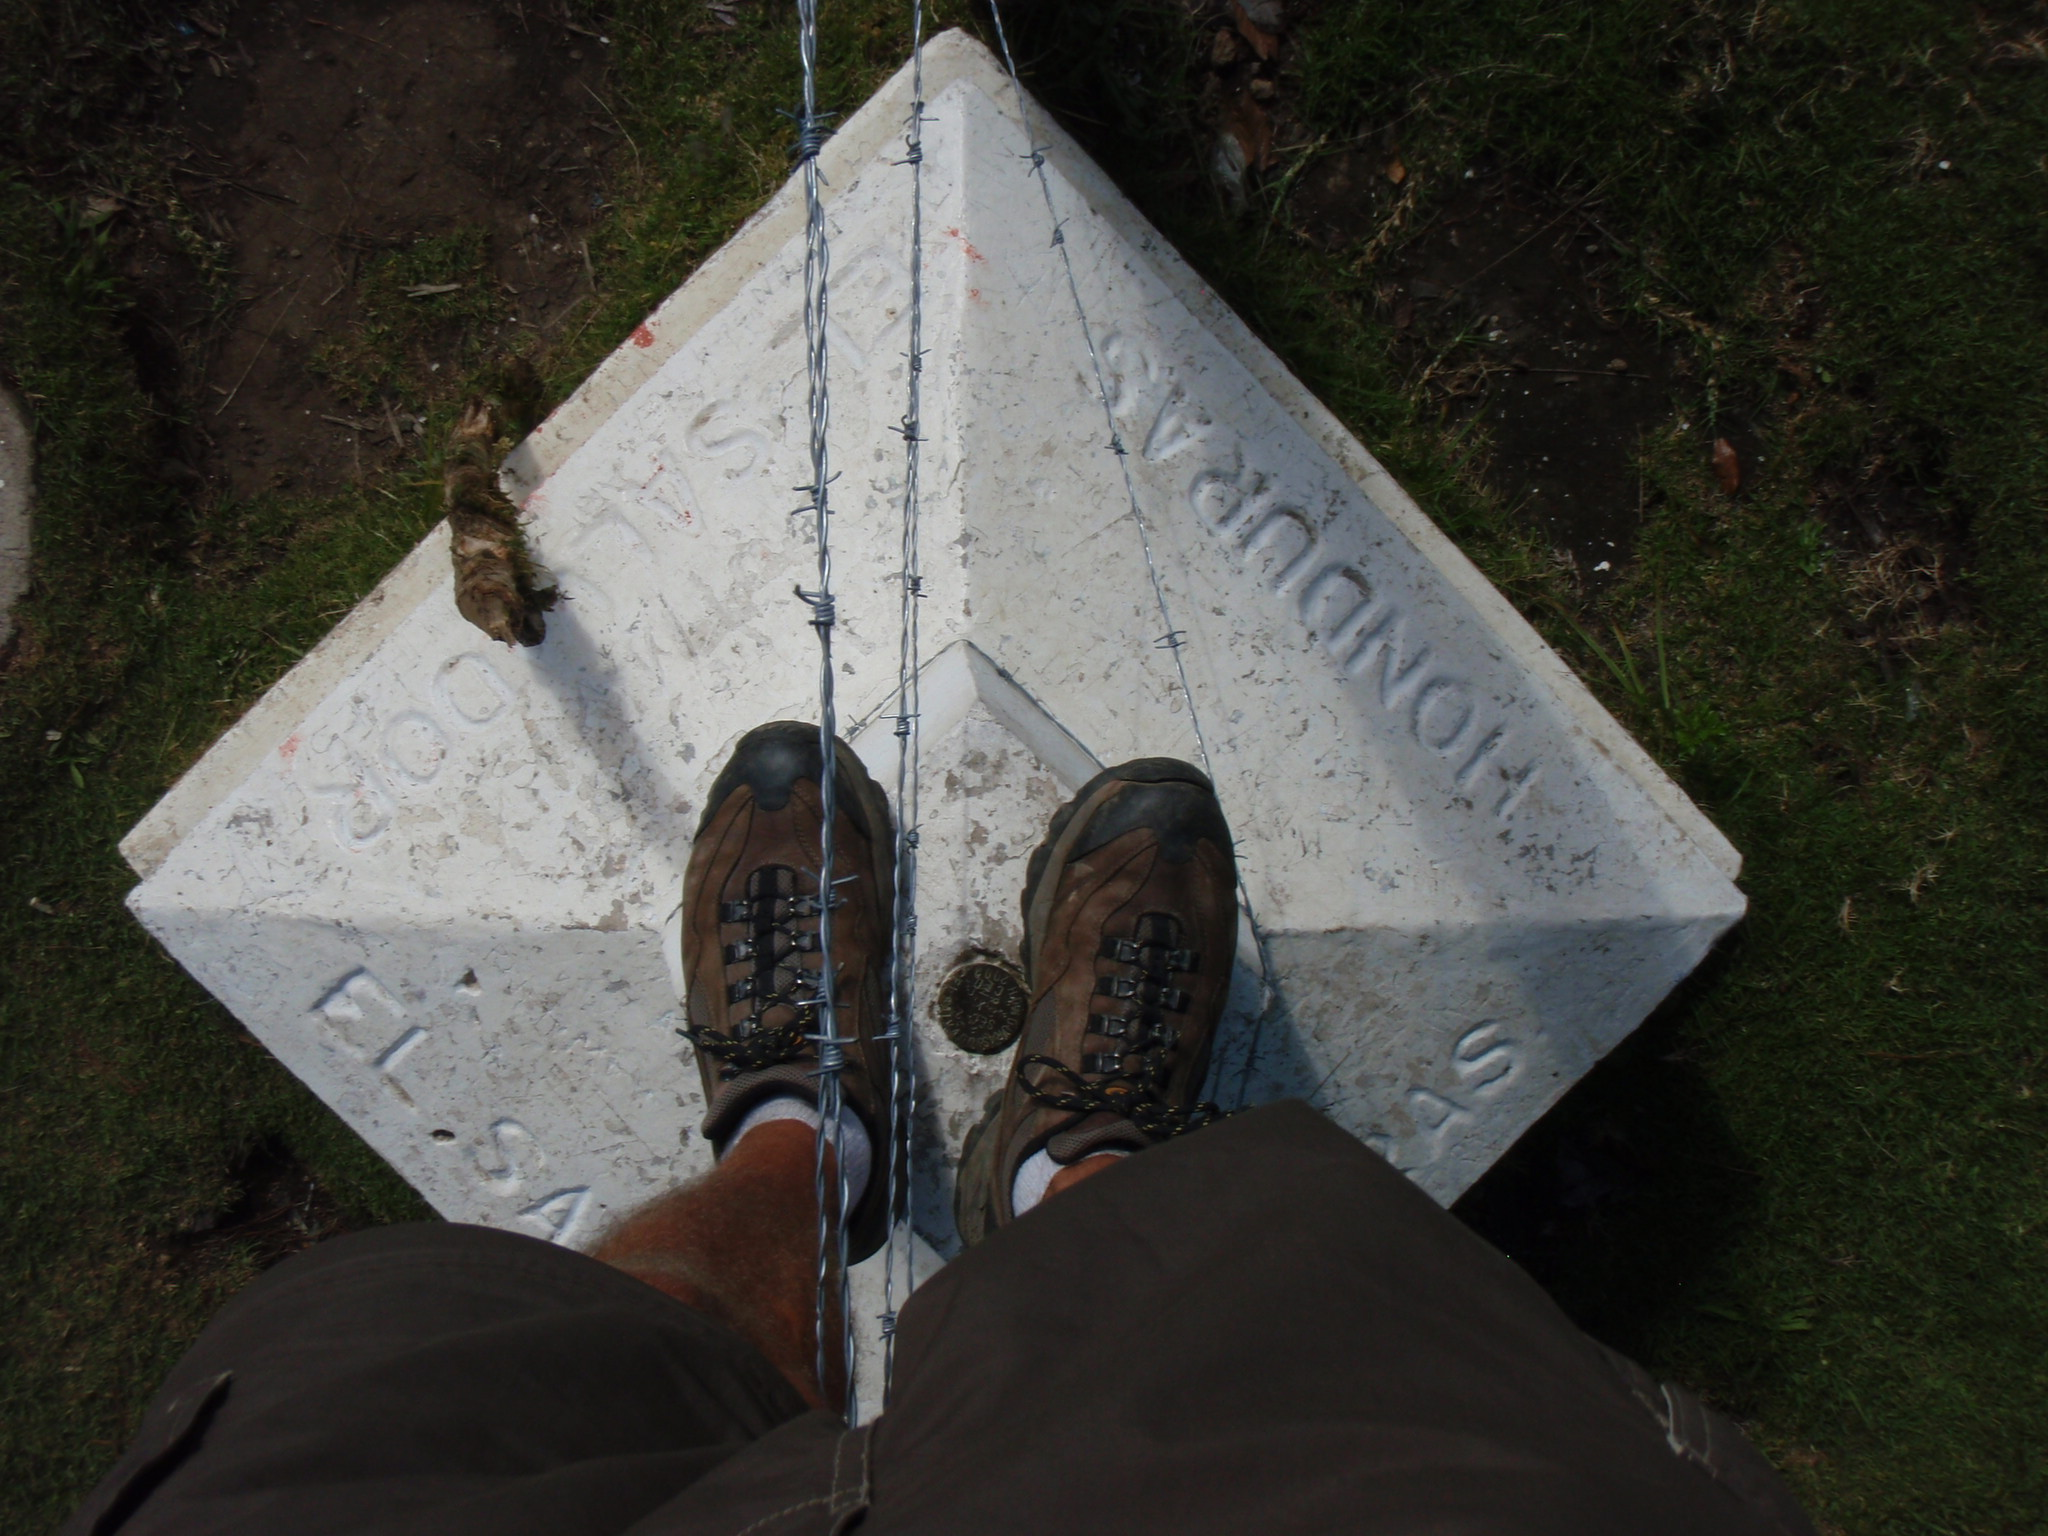 Standing with one foot in El Salvador (on highest point) and one foot in Honduras